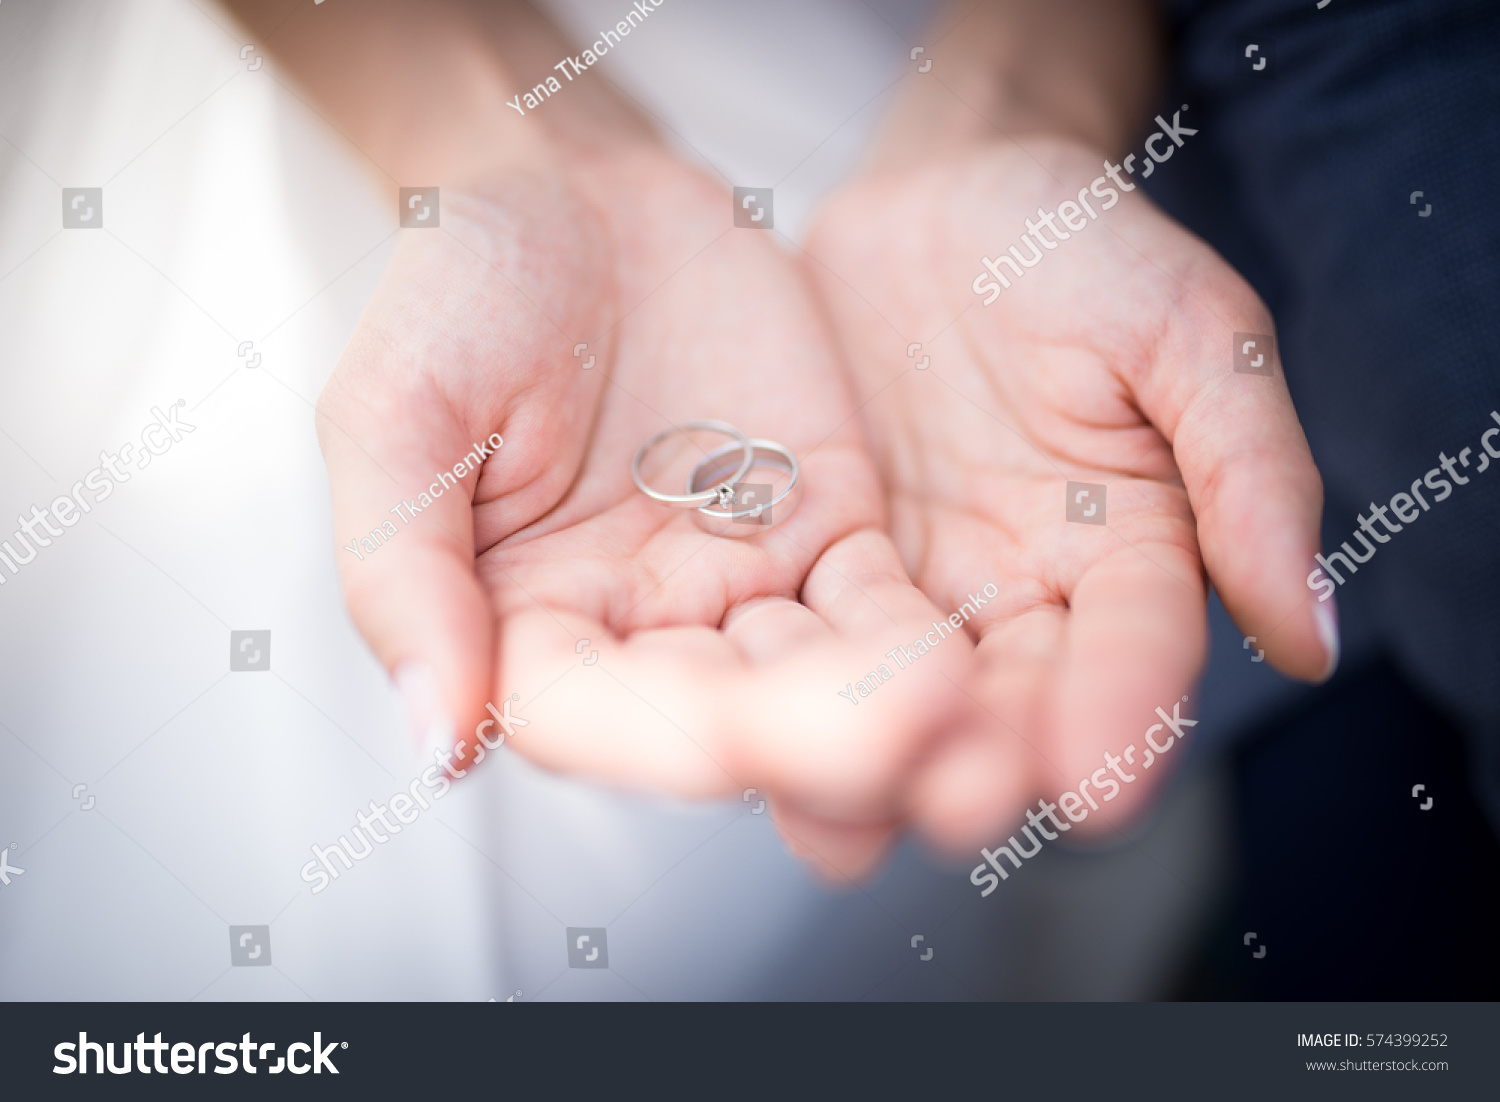 Closeup Silver Wedding Rings Hands Woman Stock Photo (Edit Now ...